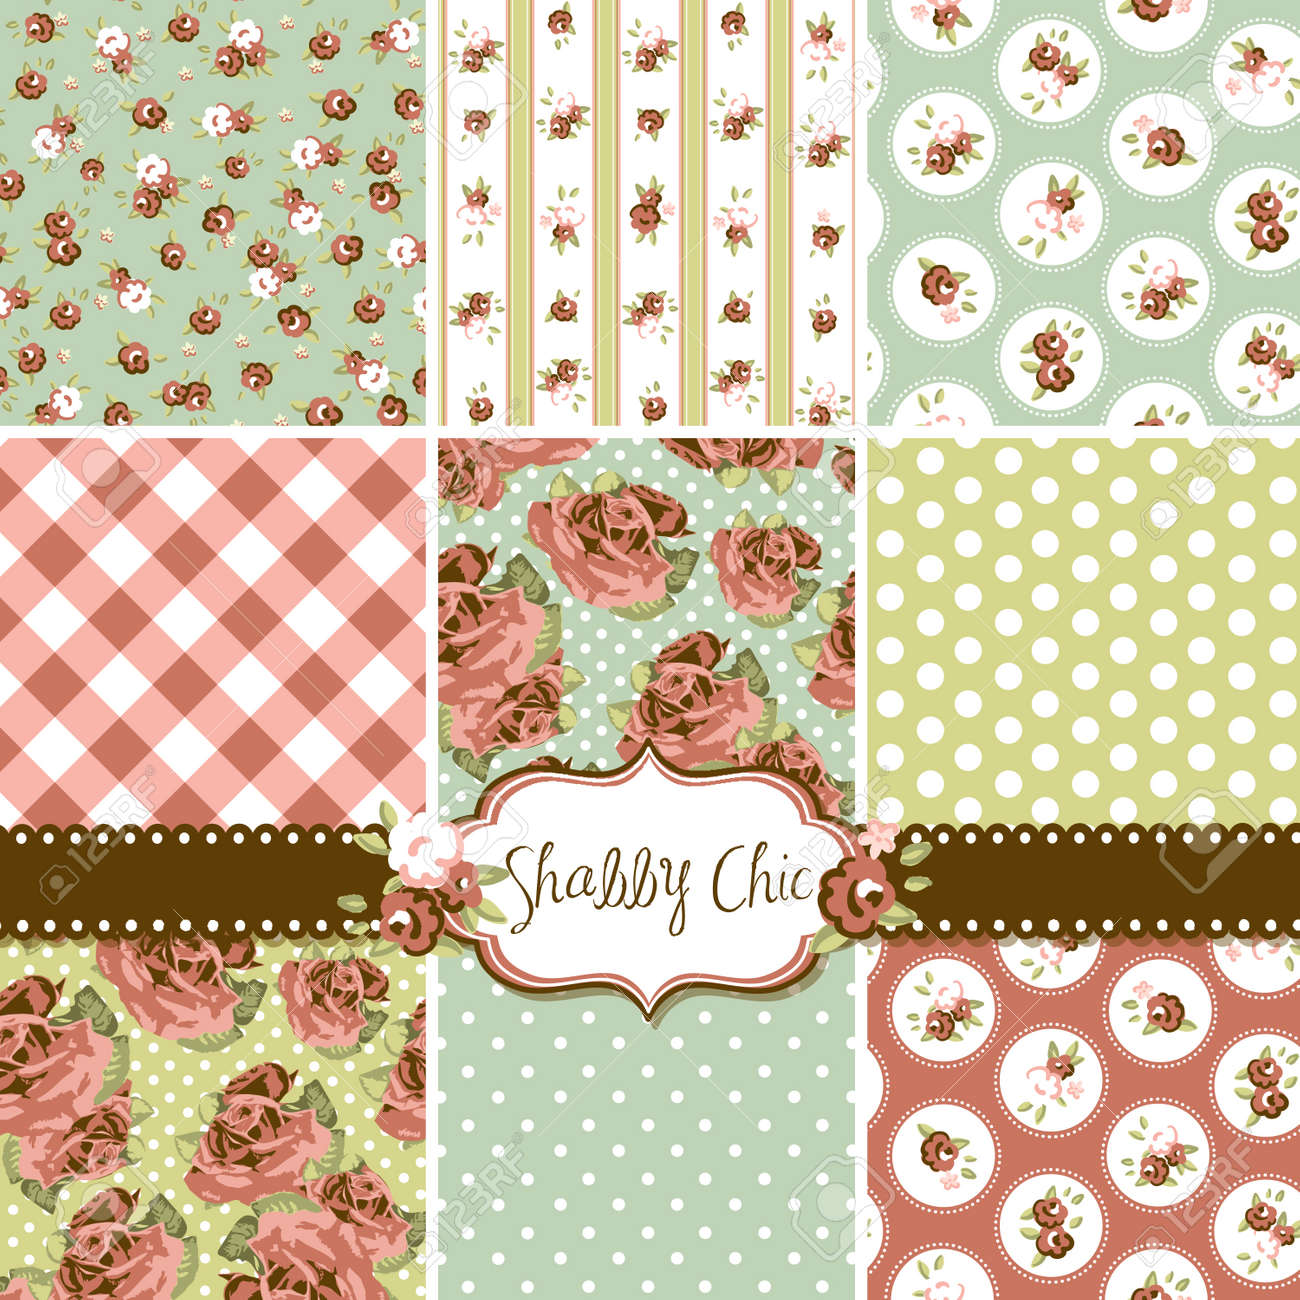 Shabby Chic Rose Patterns and seamless backgrounds. Ideal for printing onto fabric and paper or scrap booking. Stock Vector - 16681280